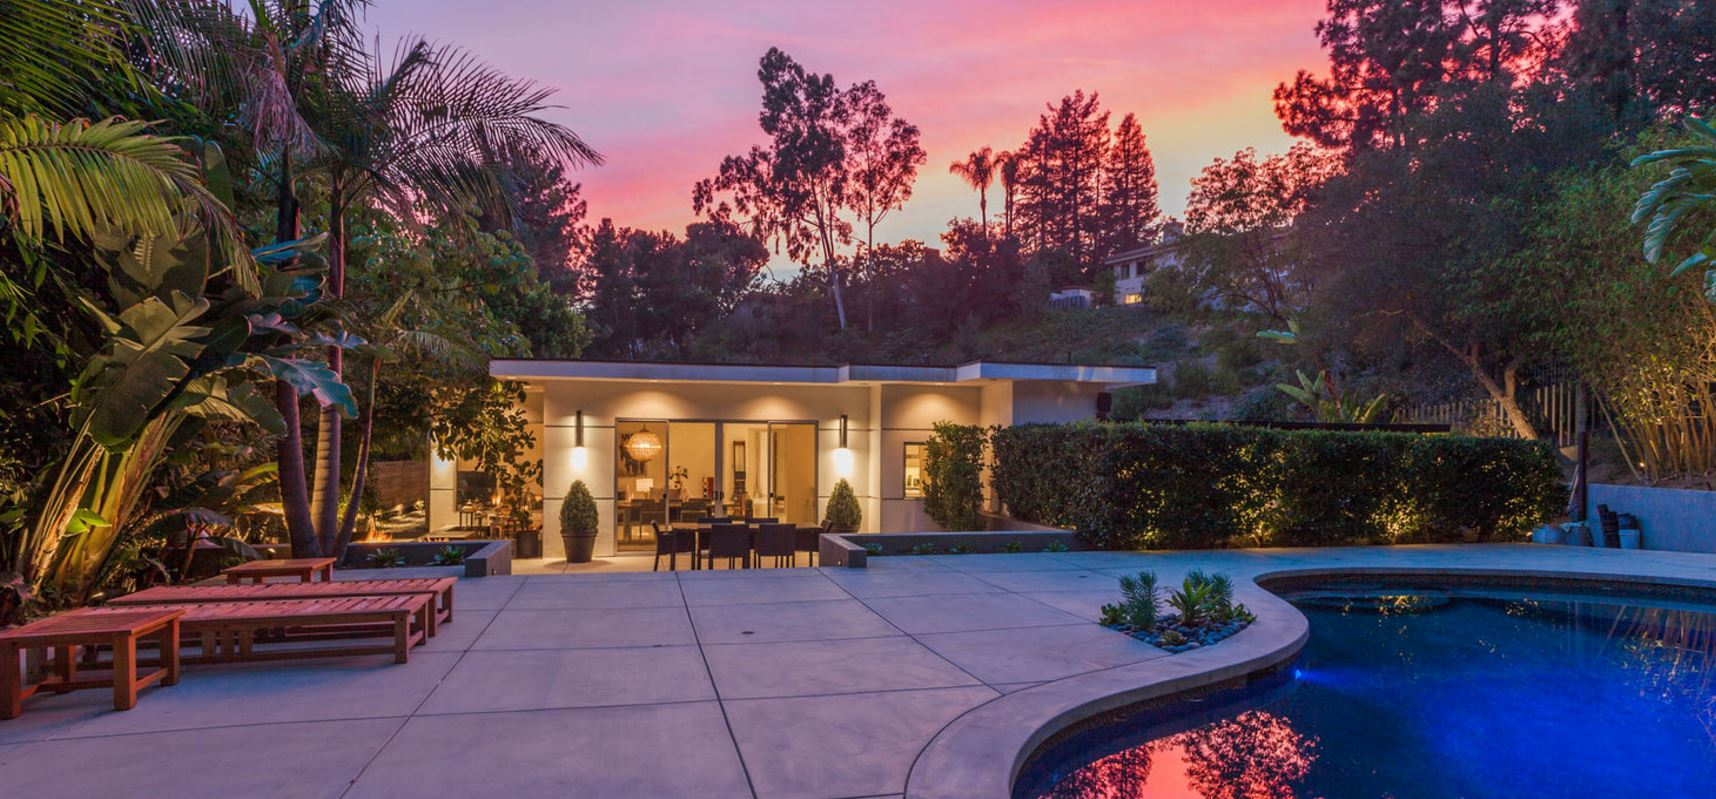 3 Bedroom Bel Air Retreat with pool